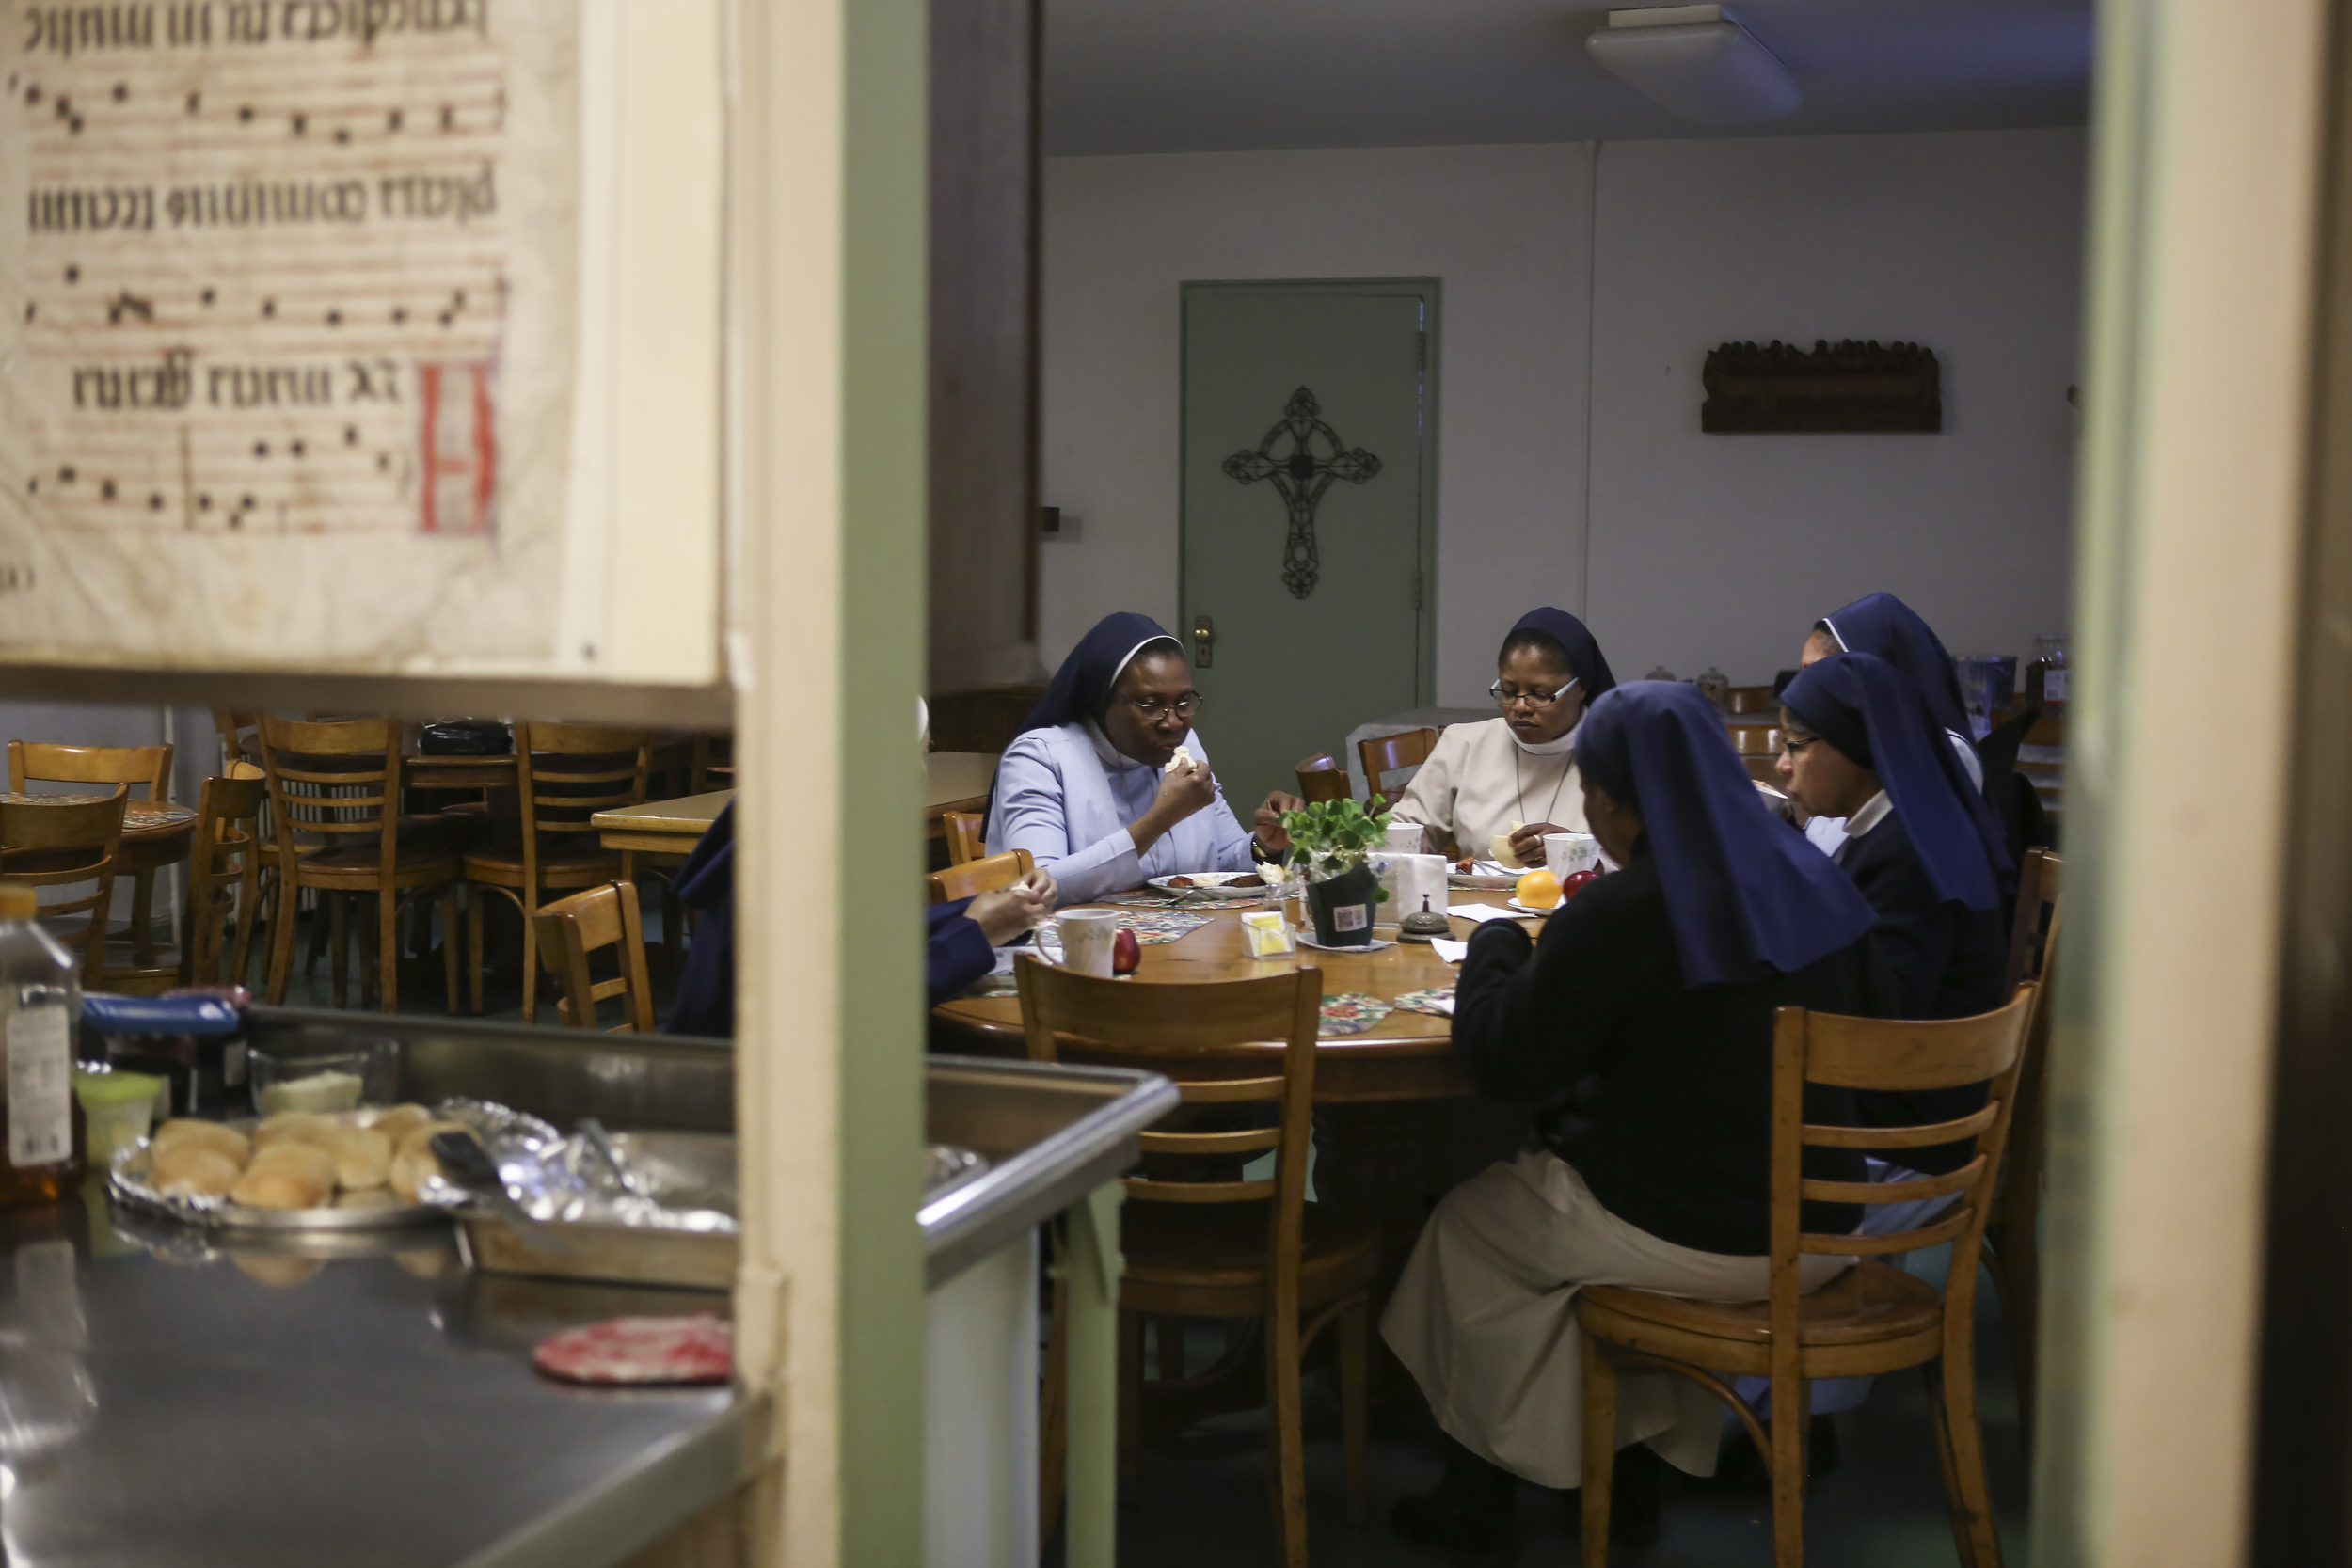 The sisters gathered together for breakfast at the mother house before attending church on Sunday.